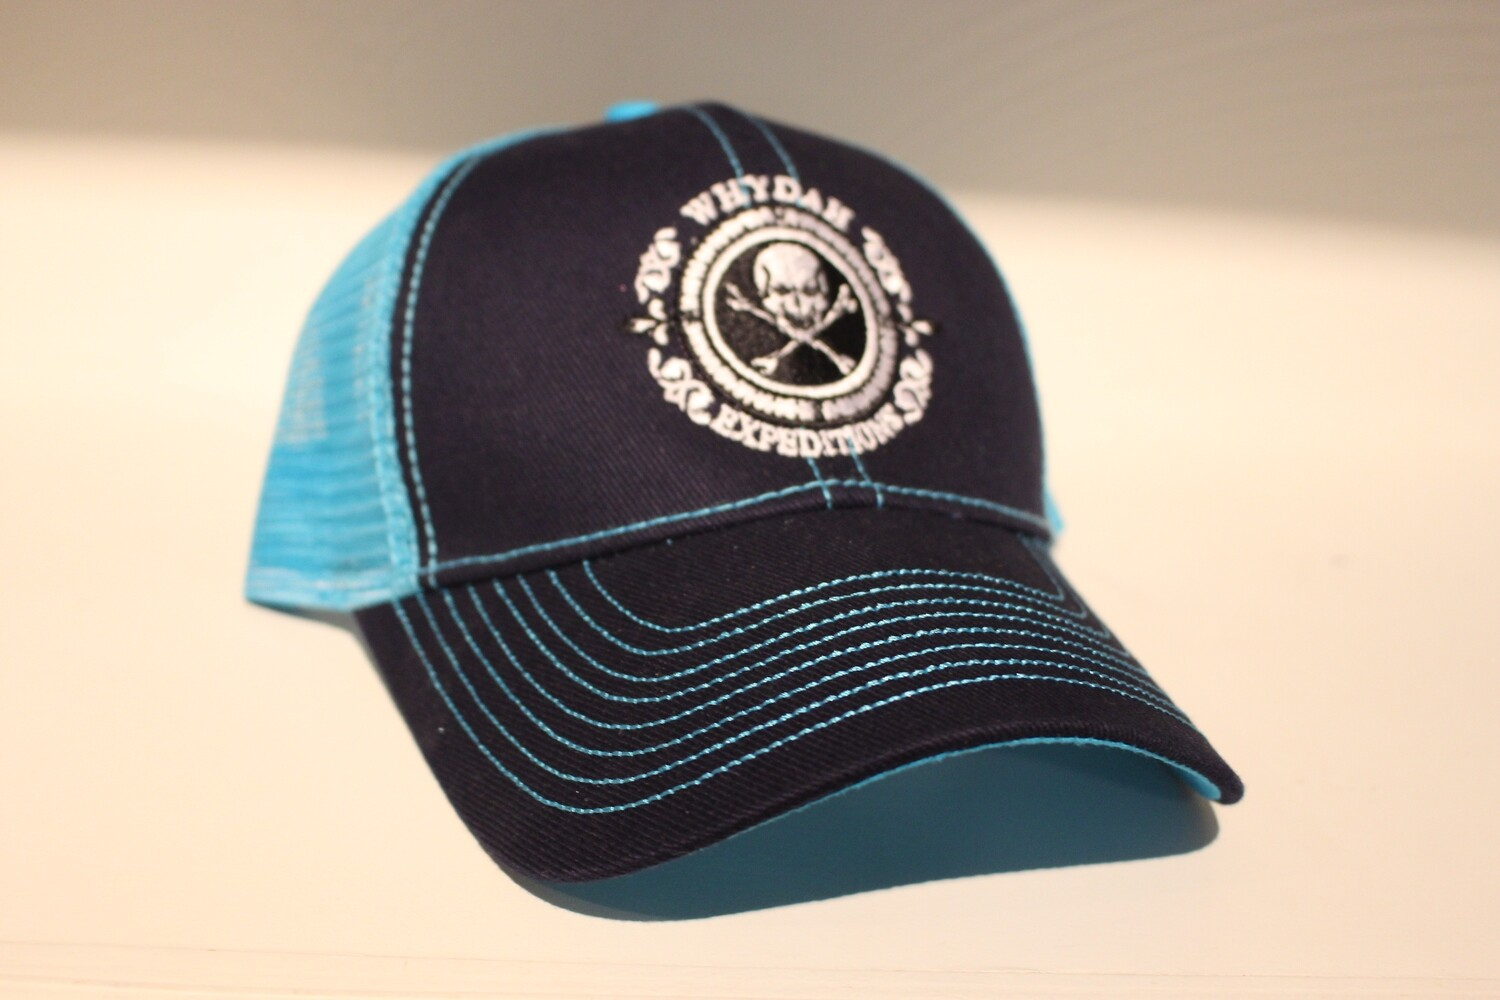 Expedition Whydah Teal Mesh Hat